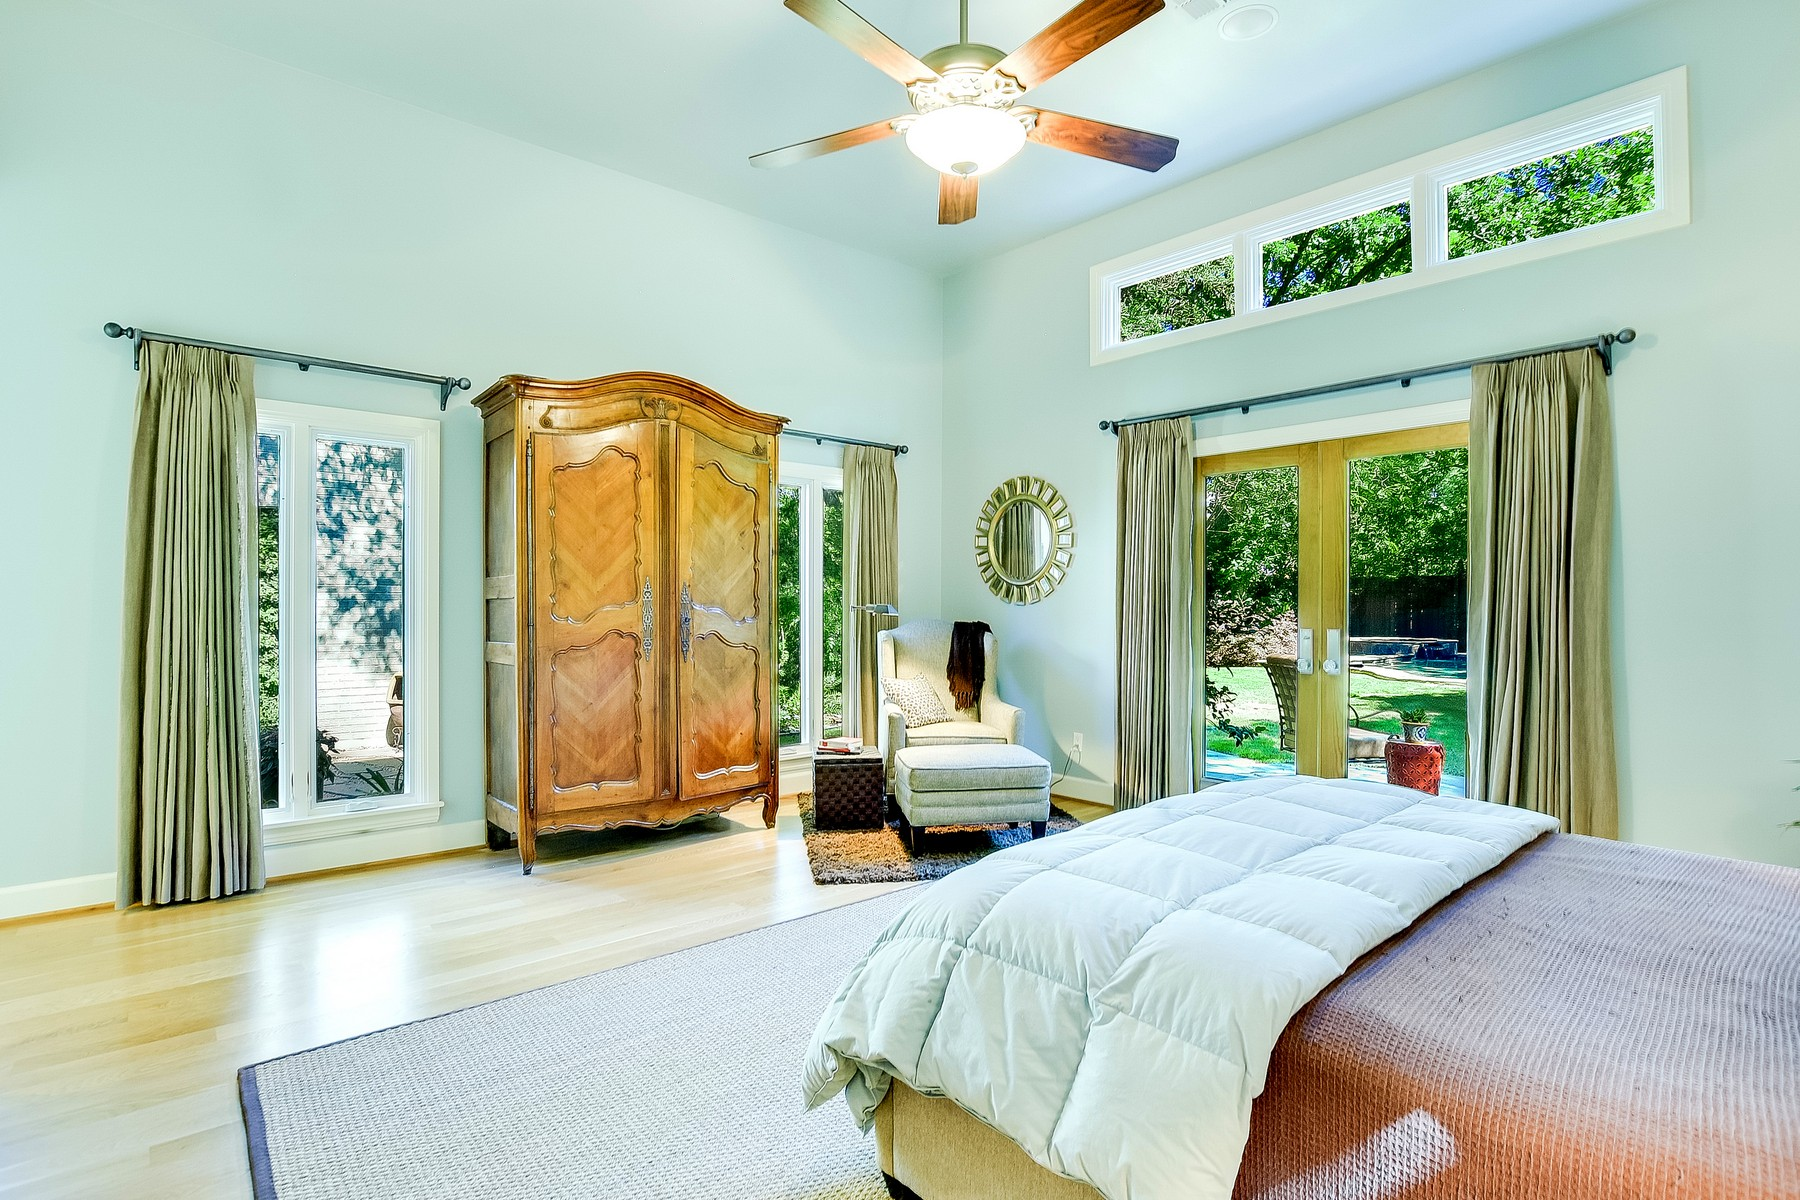 Additional photo for property listing at Unique Remodeled Central Austin Home 2404 Shoalmont Austin, Texas 78756 United States